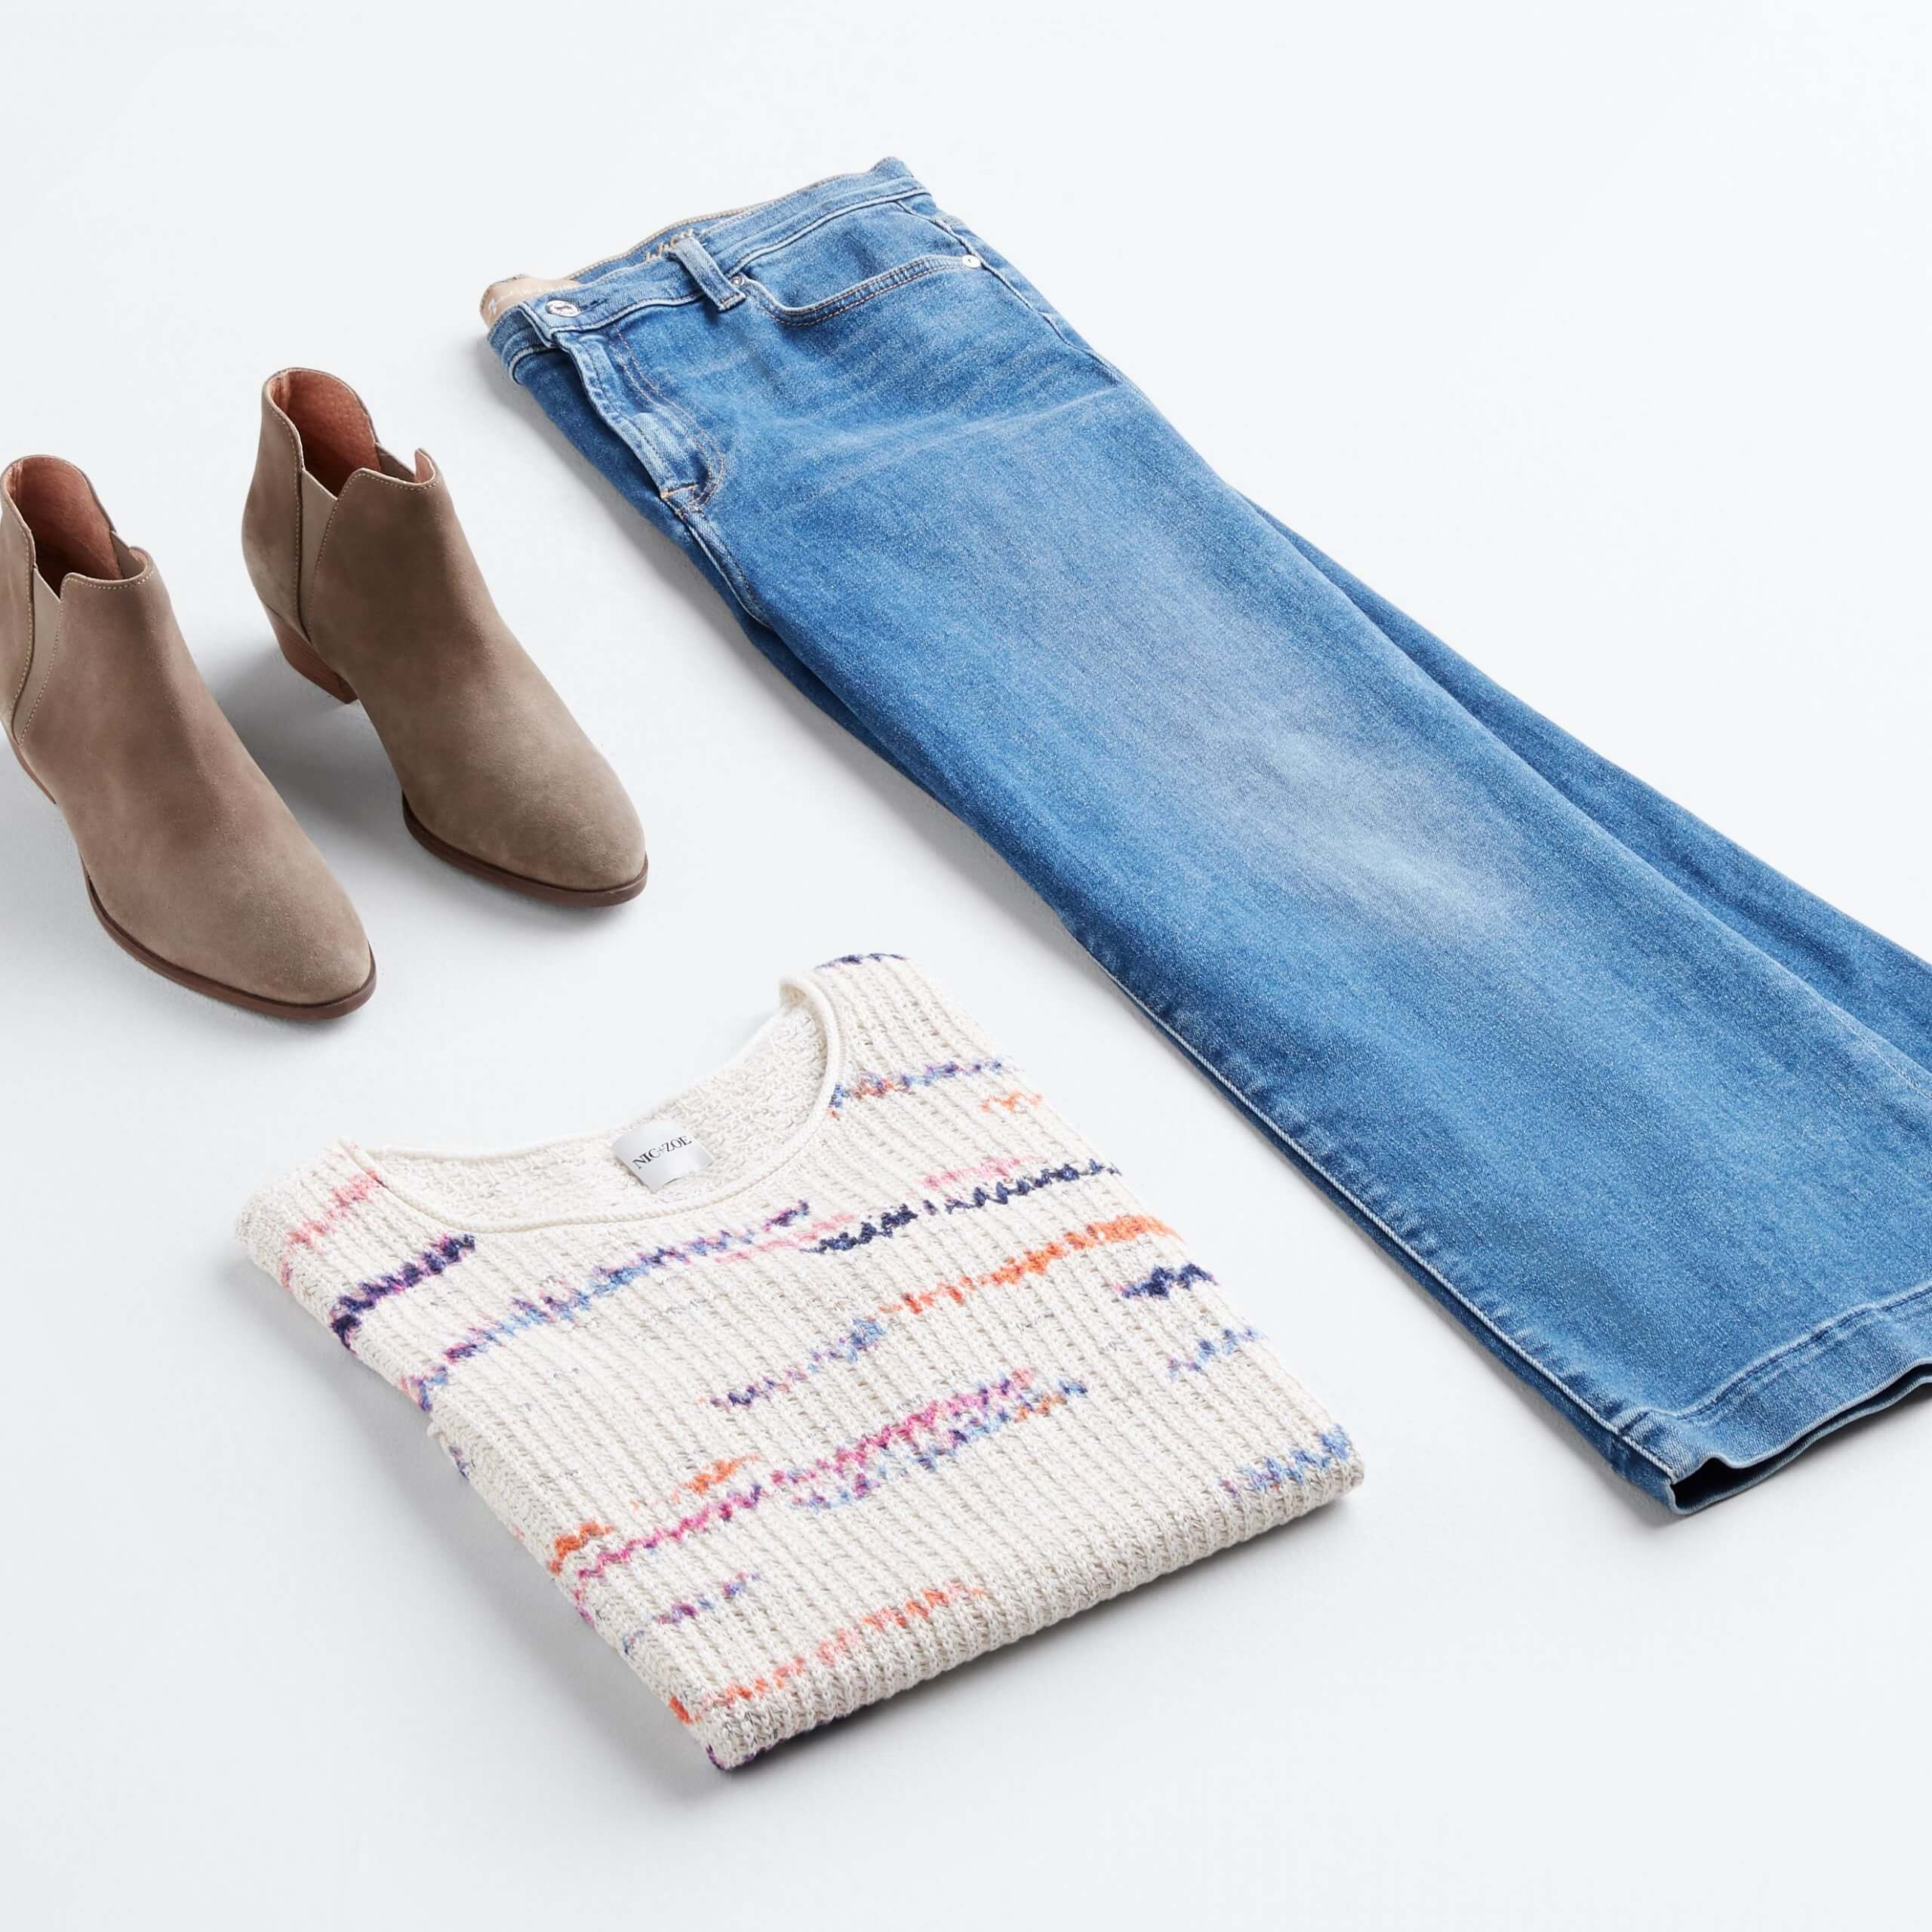 Stitch Fix outfit laydown featuring brown booties, off-white sweater and straight-leg, light-wash jeans.